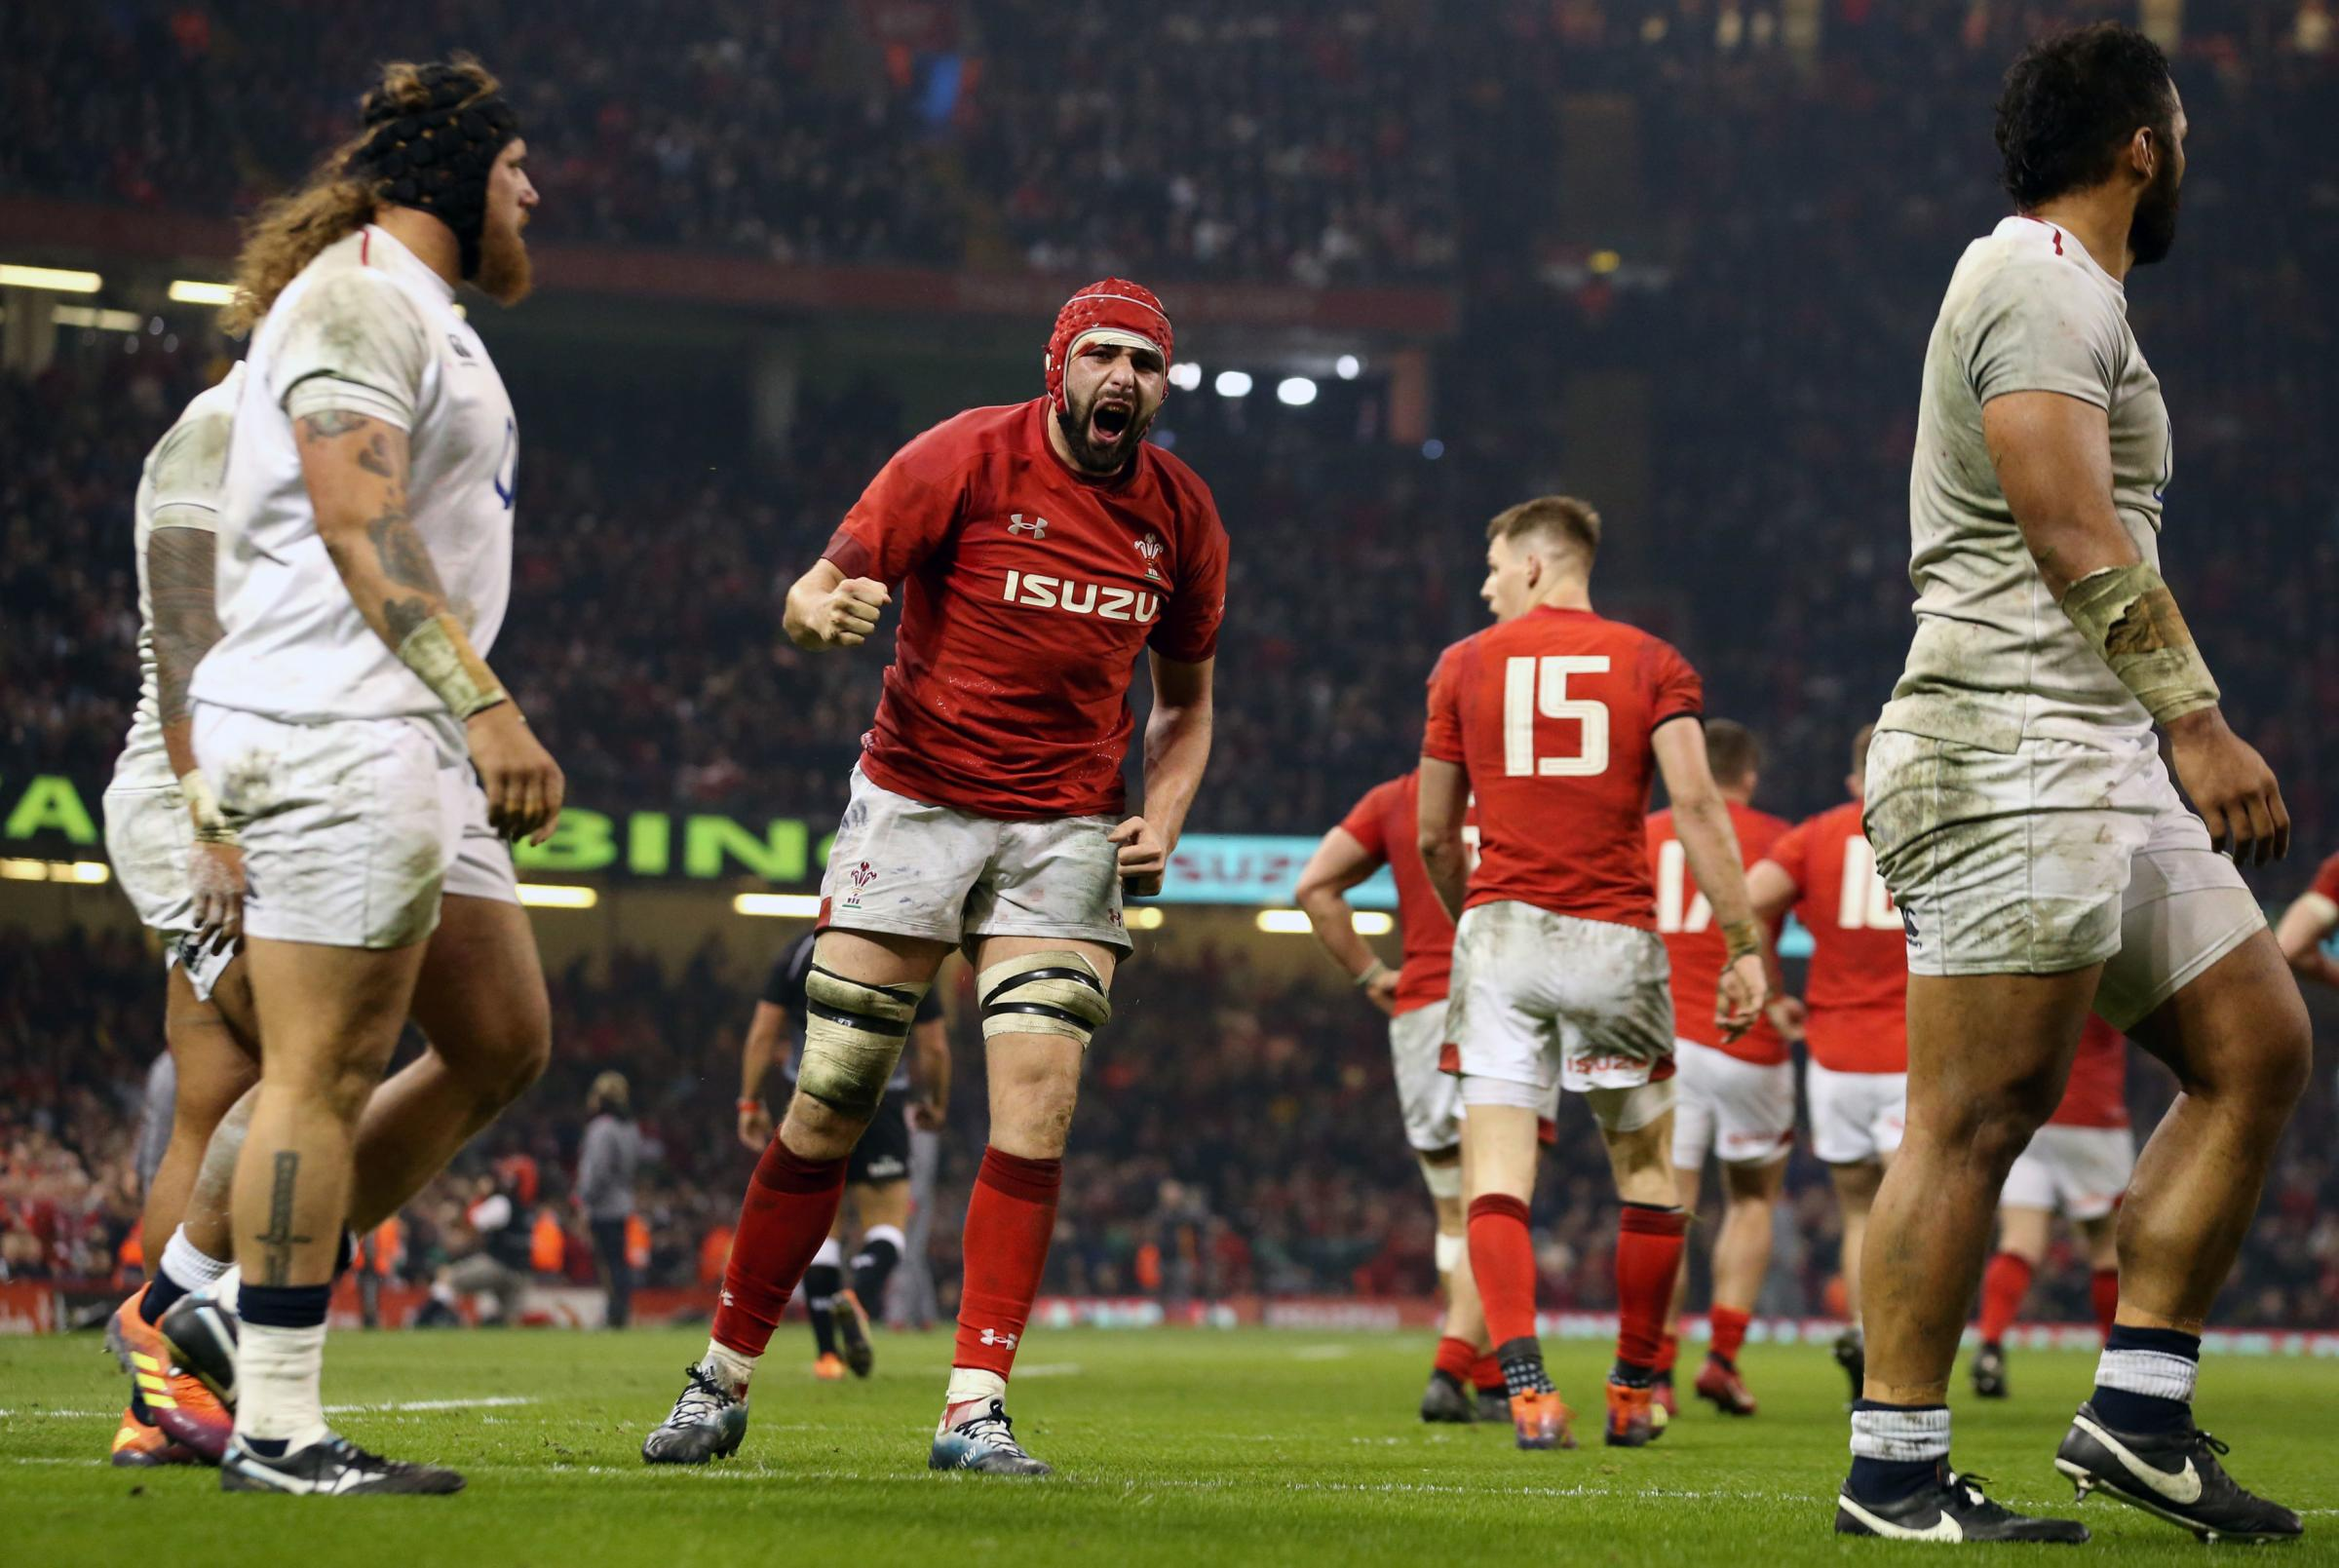 Wales' Cory Hill celebrates scoring his side's first try of the game during the Guinness Six Nations match at the Principality Stadium, Cardiff. PRESS ASSOCIATION Photo. Picture date: Saturday February 23, 2019. See PA story RUGBYU Wales. Pho